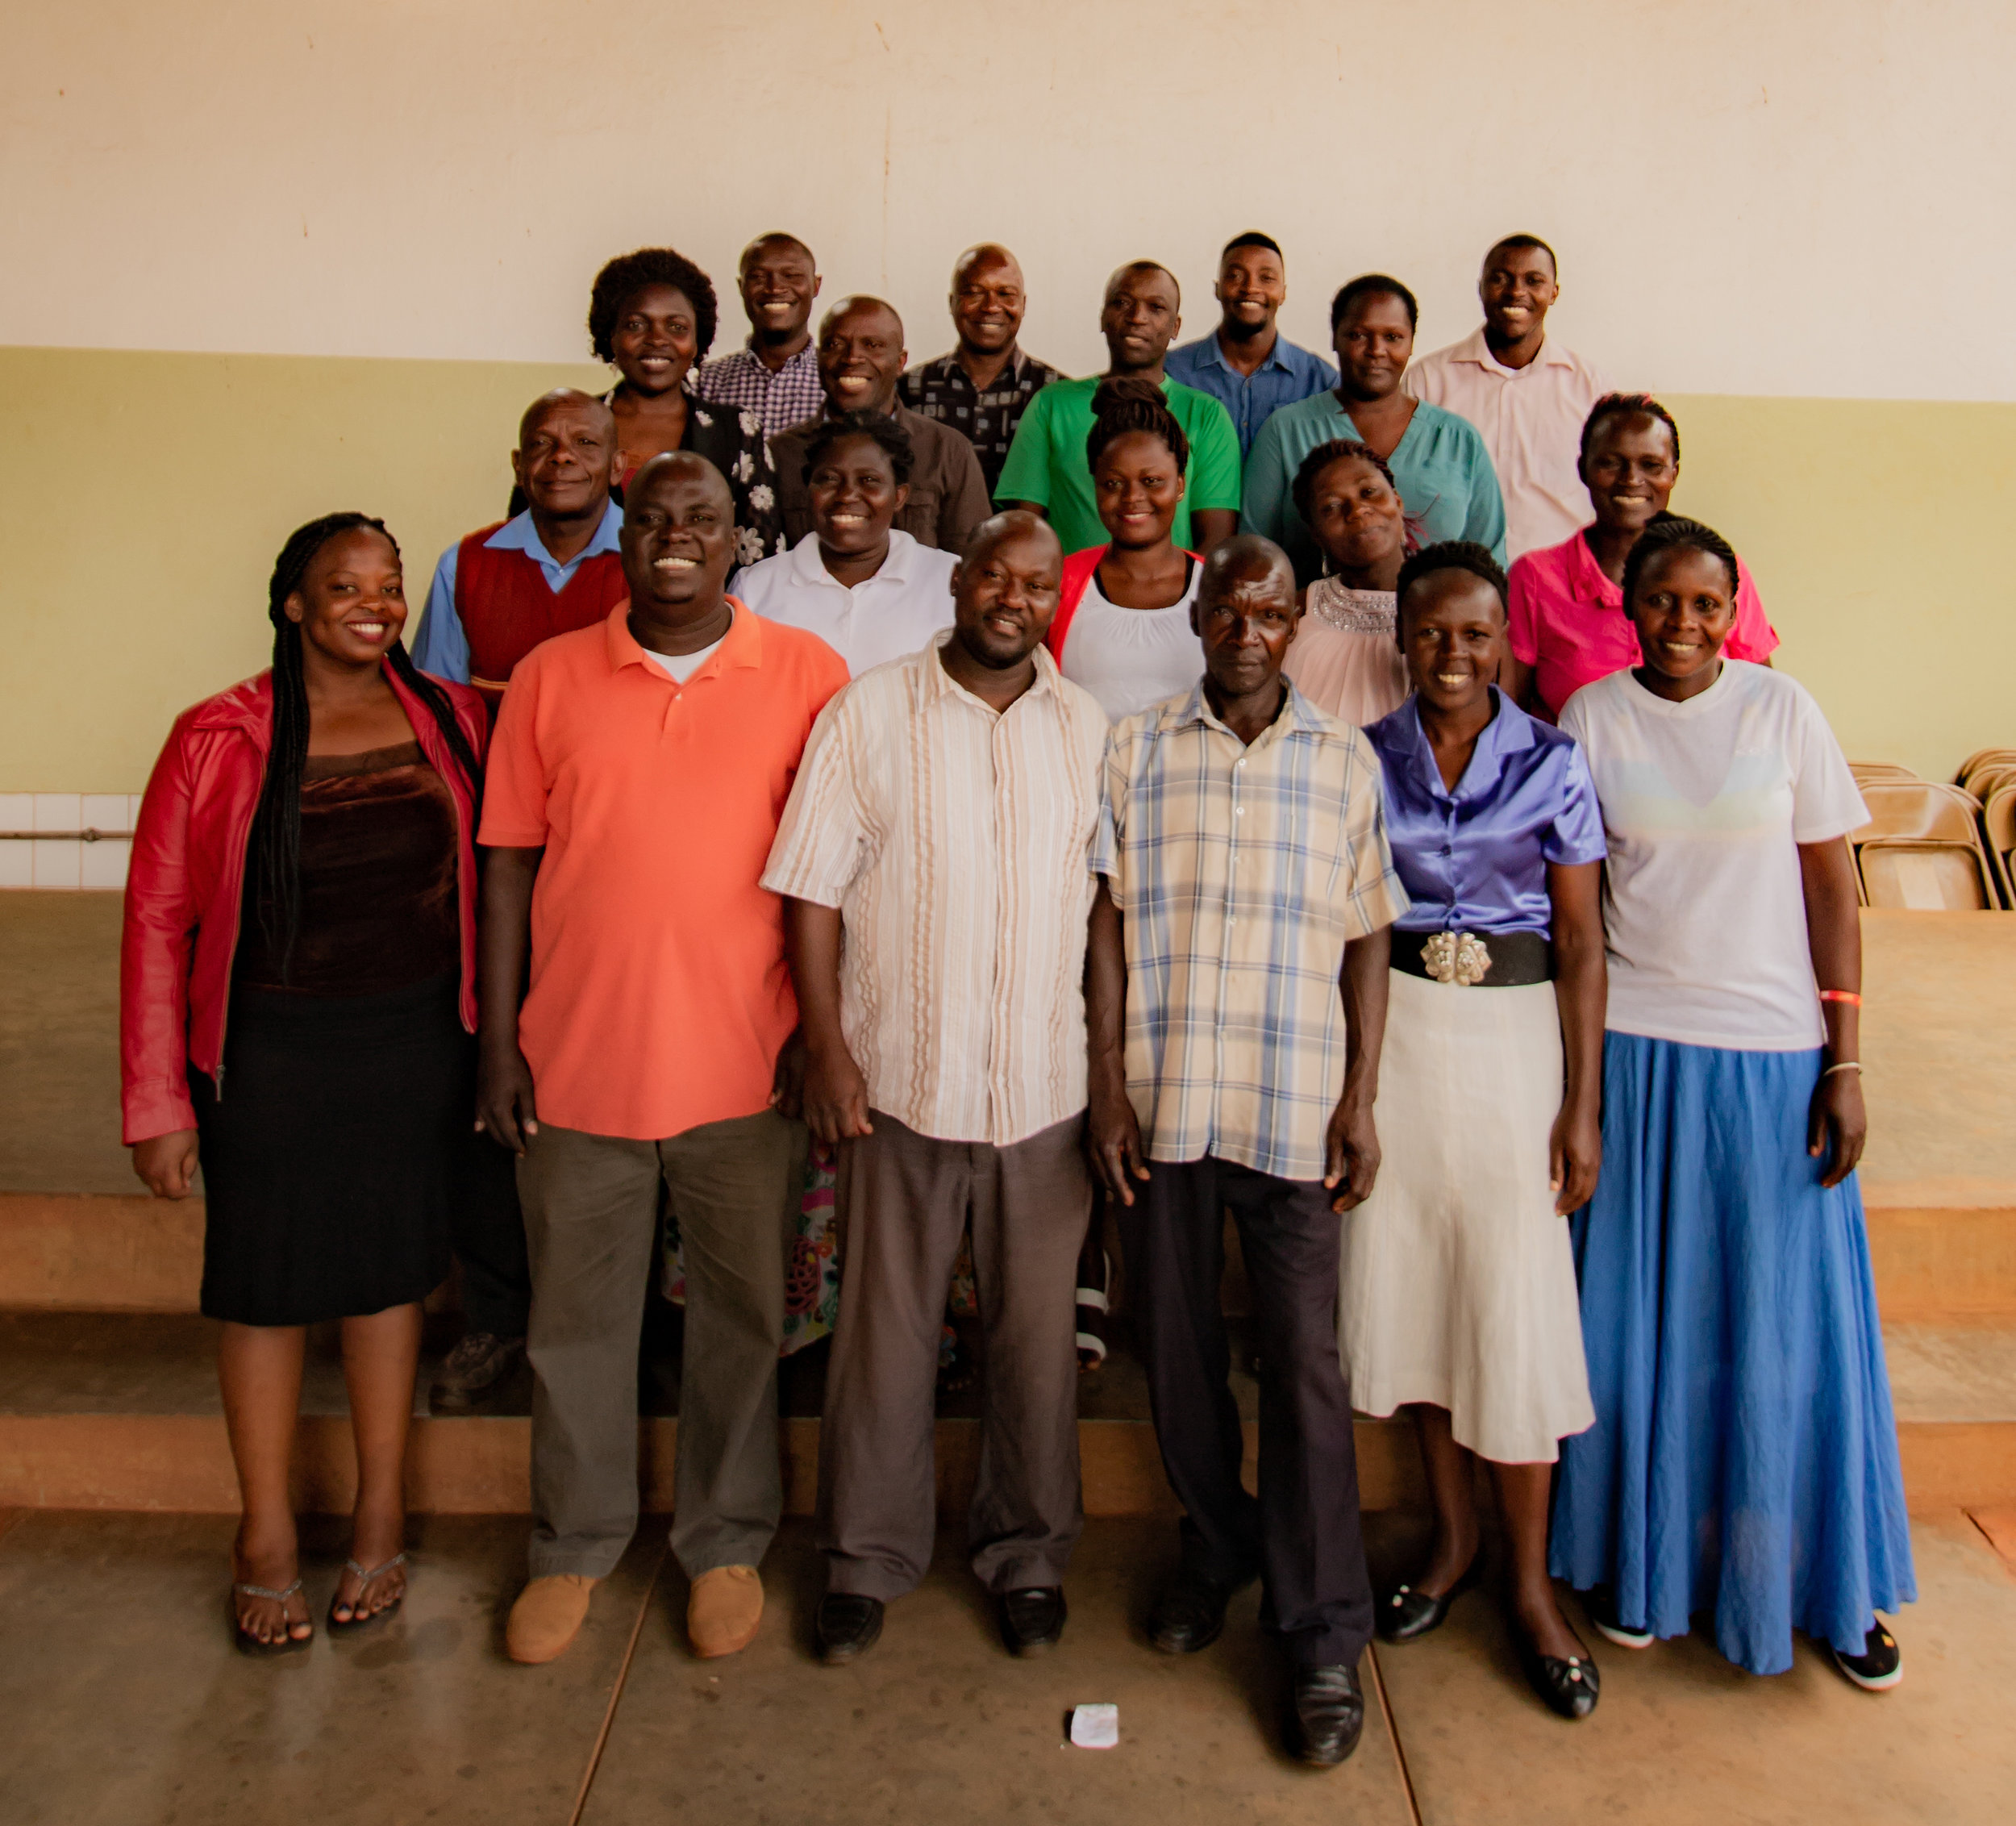 Top row:   Tom Ngobi ,  Roy Mwesigwa ,  Enock Madoolo , and  Alex Walyomu .  Second row:   Justine Nandera ,  Steven Kambale ,  Abraham Mulongo , and  Suzan Keddi .  Third row:   Alex Bamulumbye ,  Ida Bazonona ,  Sarah Naguti ,  Manuela Ongyera , and  Jeska Nairuba .  Bottom row:   Lorna Katagara ,  Henry Oyier ,  David Balimunsi ,  Martin Kibuuka ,  Harriet Kefeza , and  Tape Bwana .  Not pictured:   Irene Ngobi .